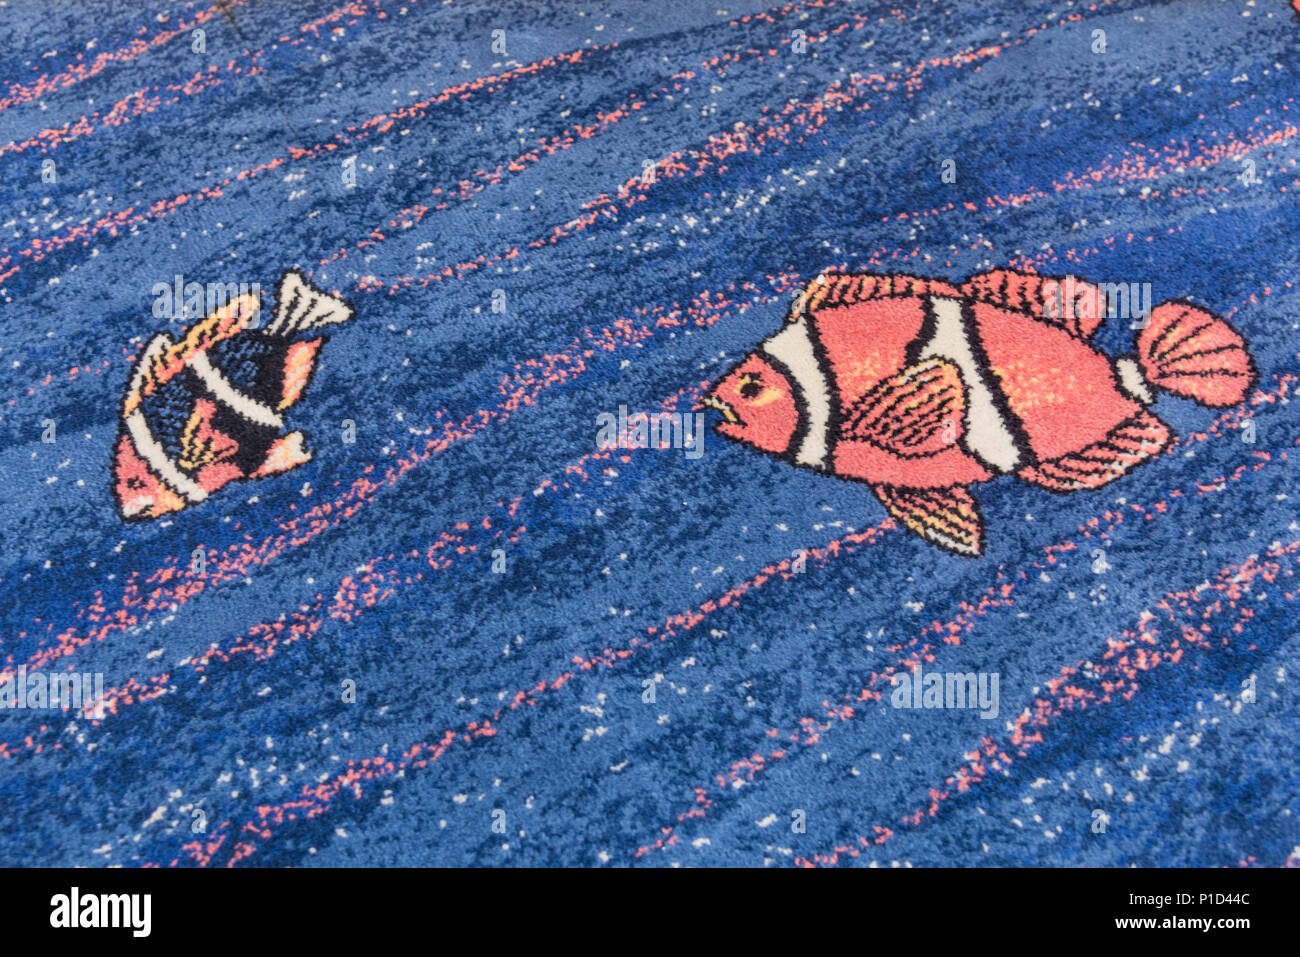 Fish designs on the carpet of the CAT ferry from Yarmouth, N.S. to Portland, Maine. - Stock Image